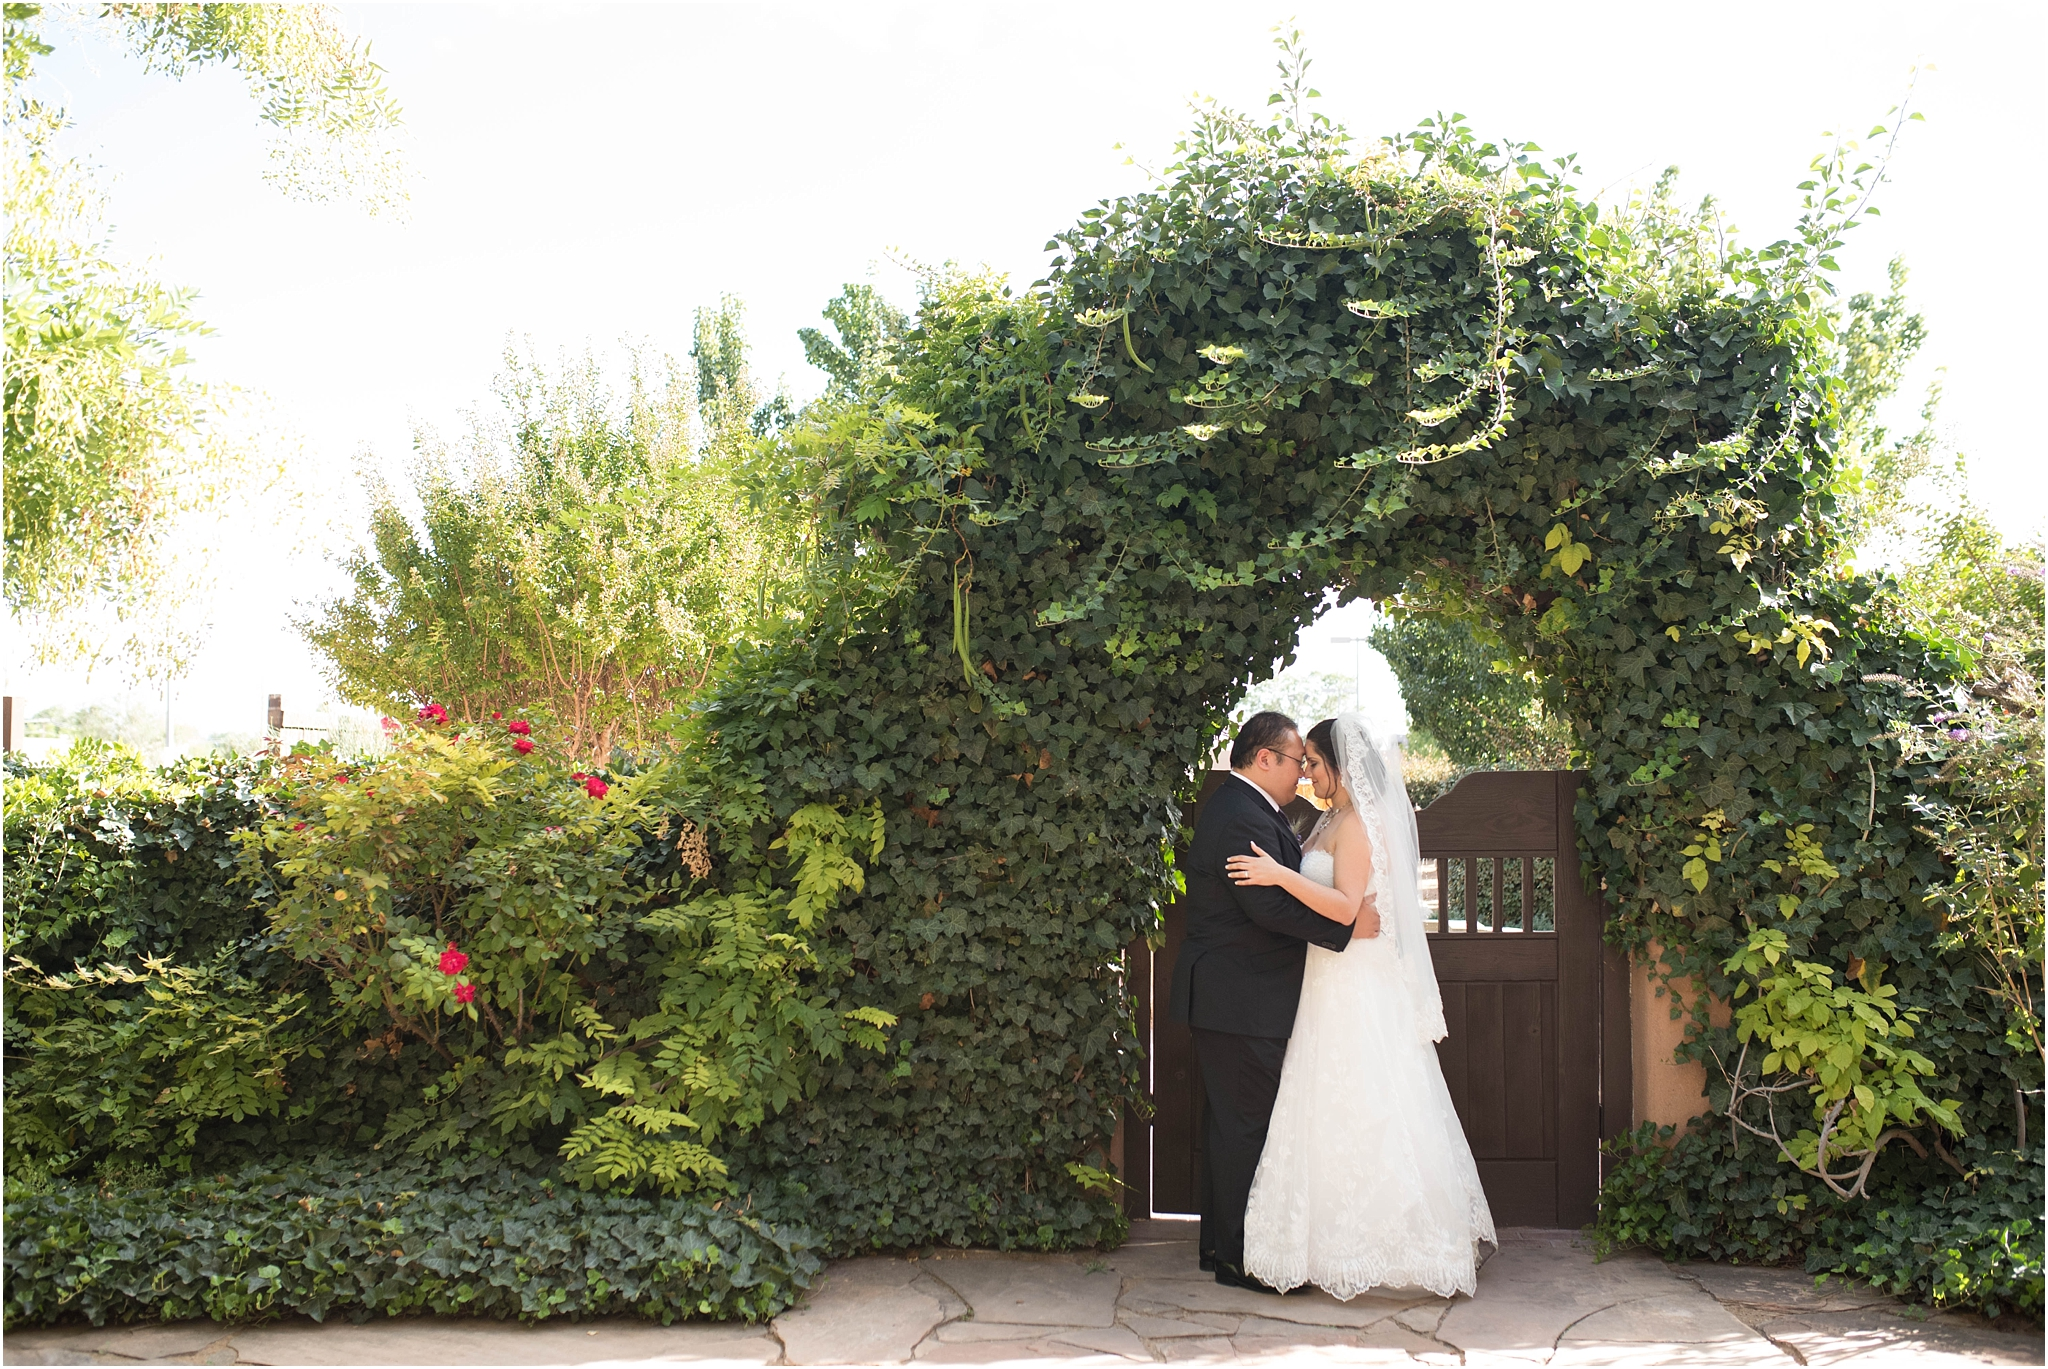 kayla kitts photography - new mexico wedding photographer - albuquerque botanic gardens - hotel albuquerque-casa de suenos_0223.jpg